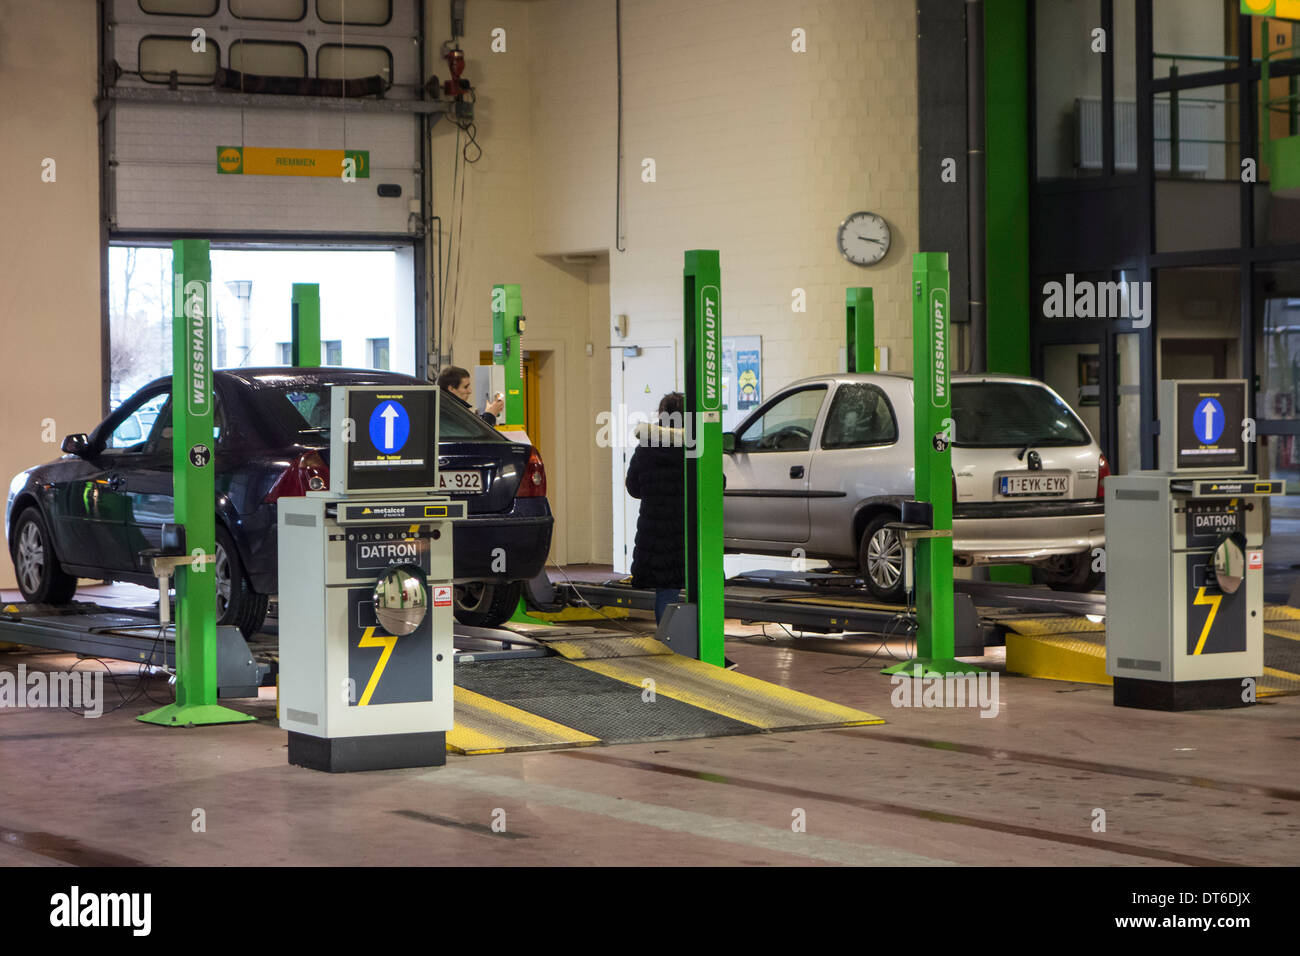 Inspection of cars in MOT testing centre for a yearly motor vehicle inspection - Stock Image